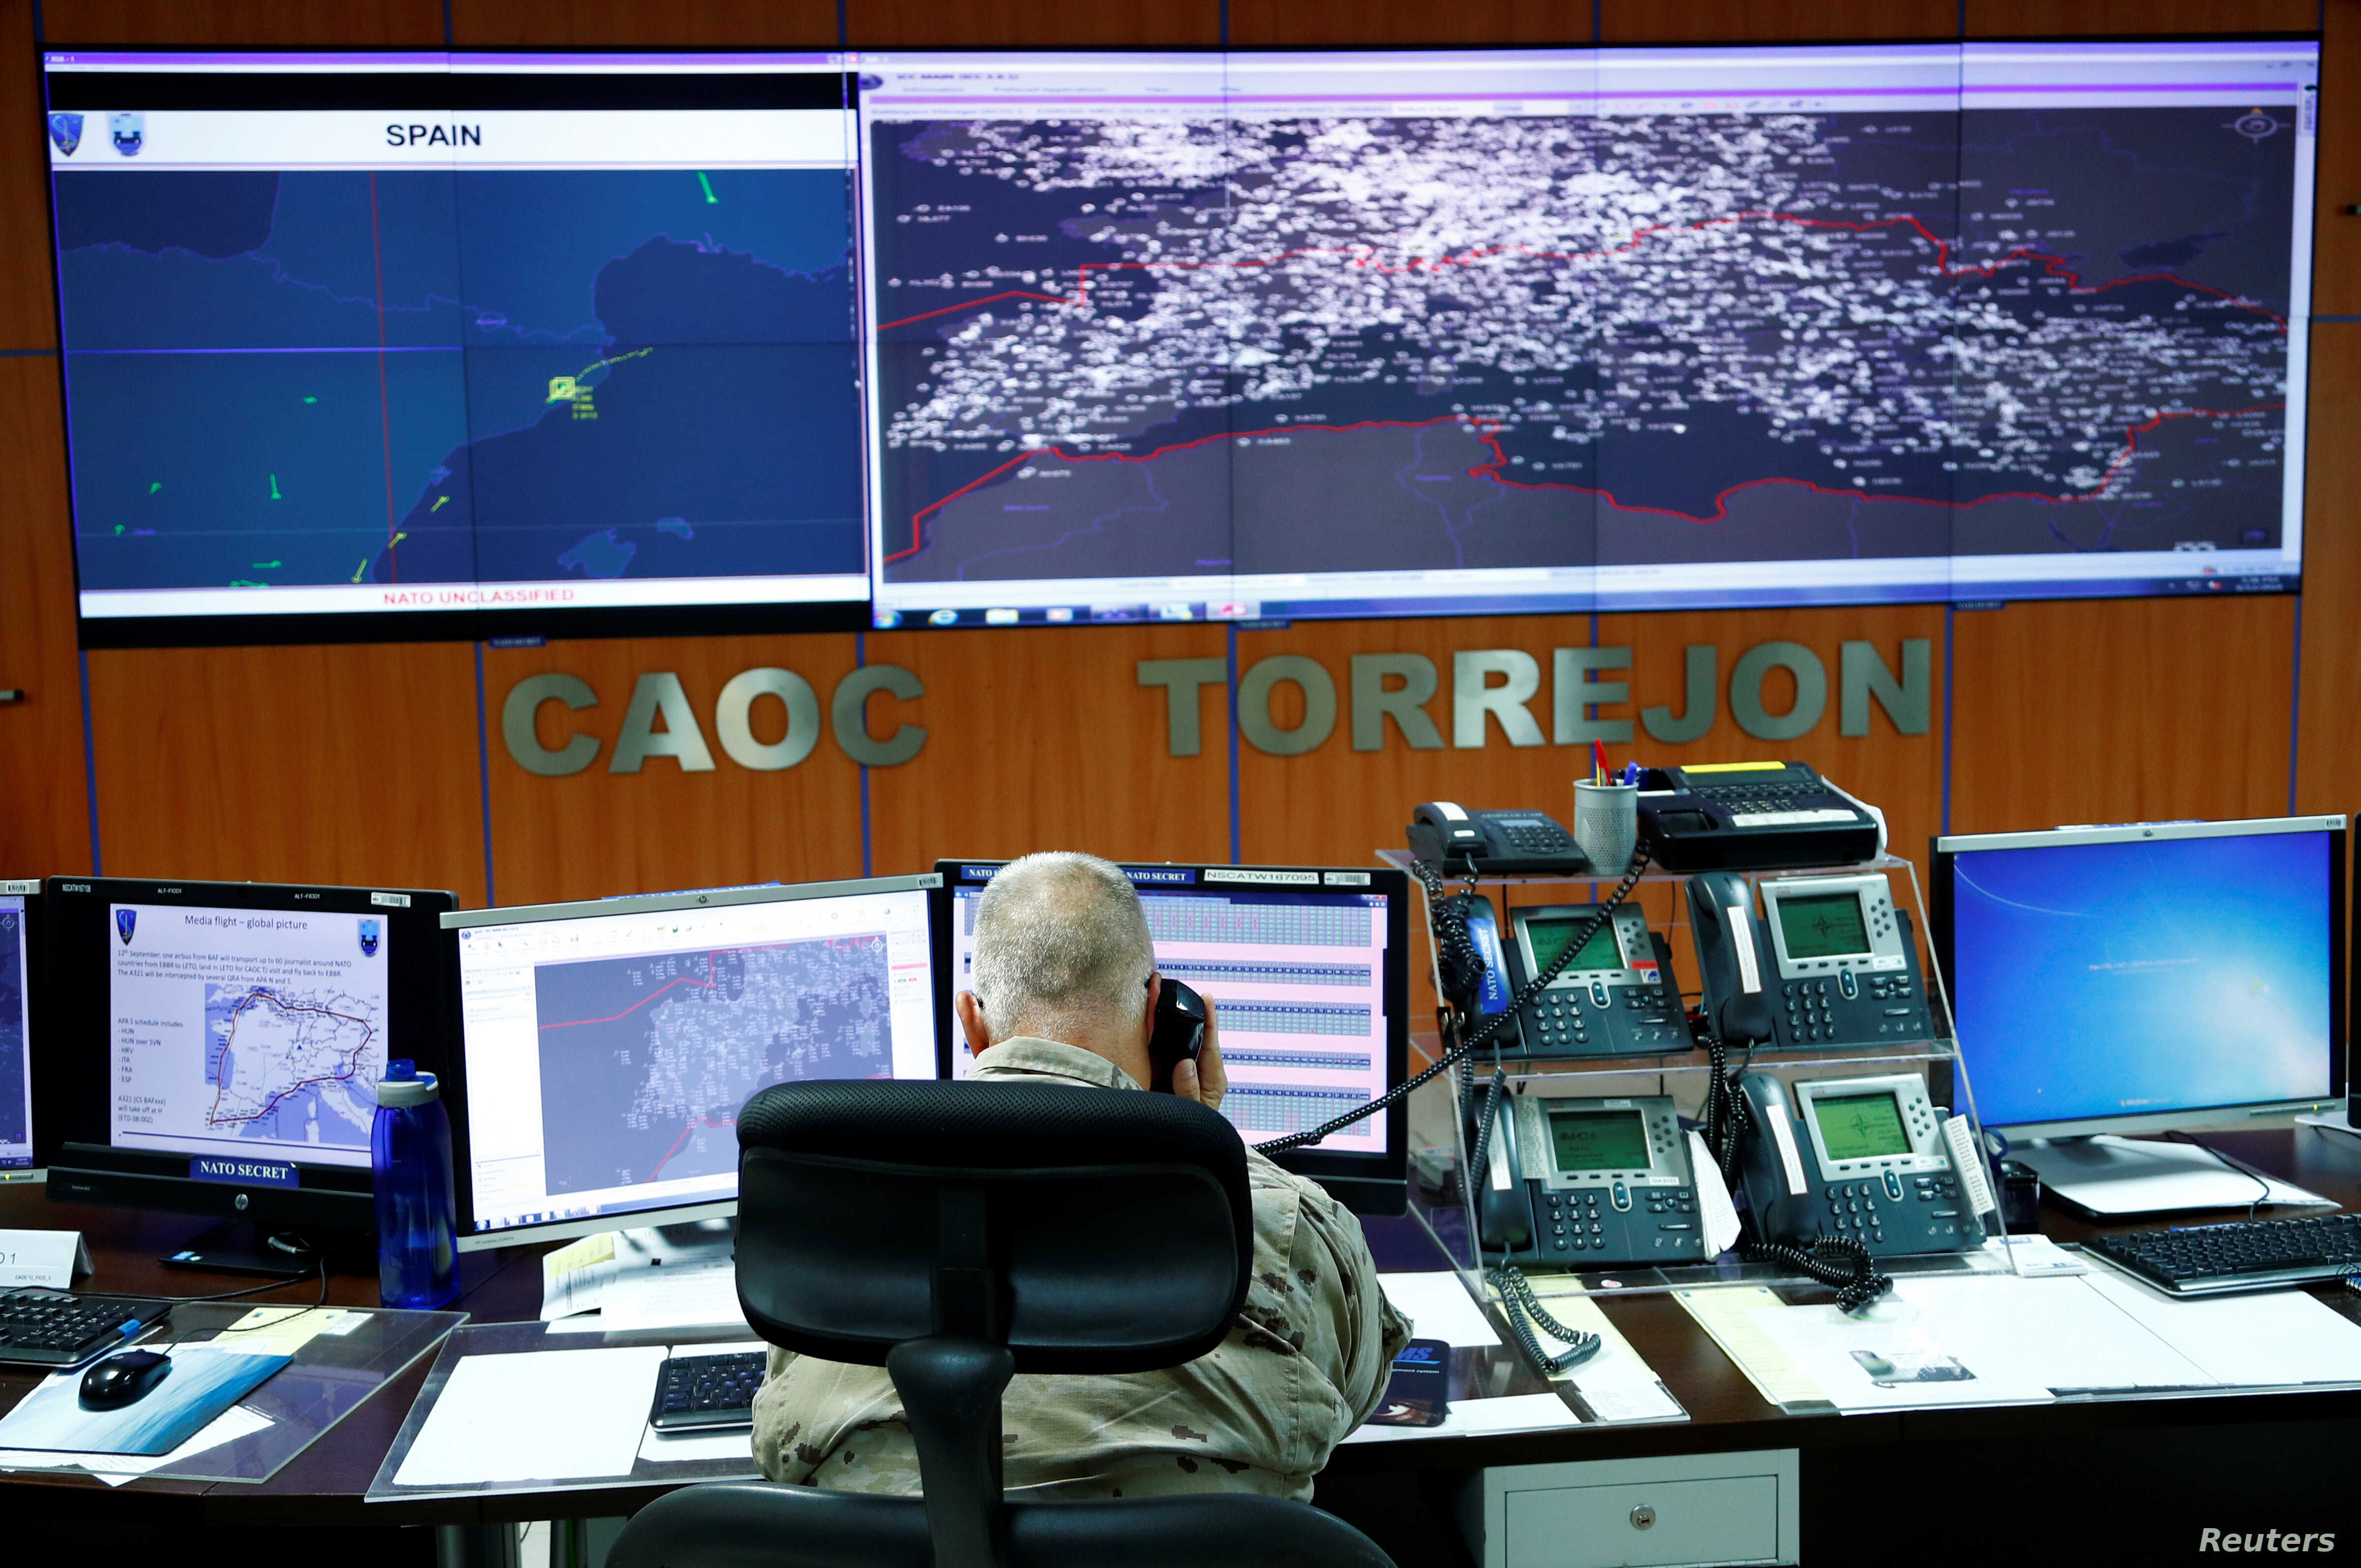 NATO personnel monitor air traffic at the Combined Air Operations Centre (CAOC) at Torrejon airbase, Spain, as part of NATO drills over Western Europe, Sept.12, 2018.